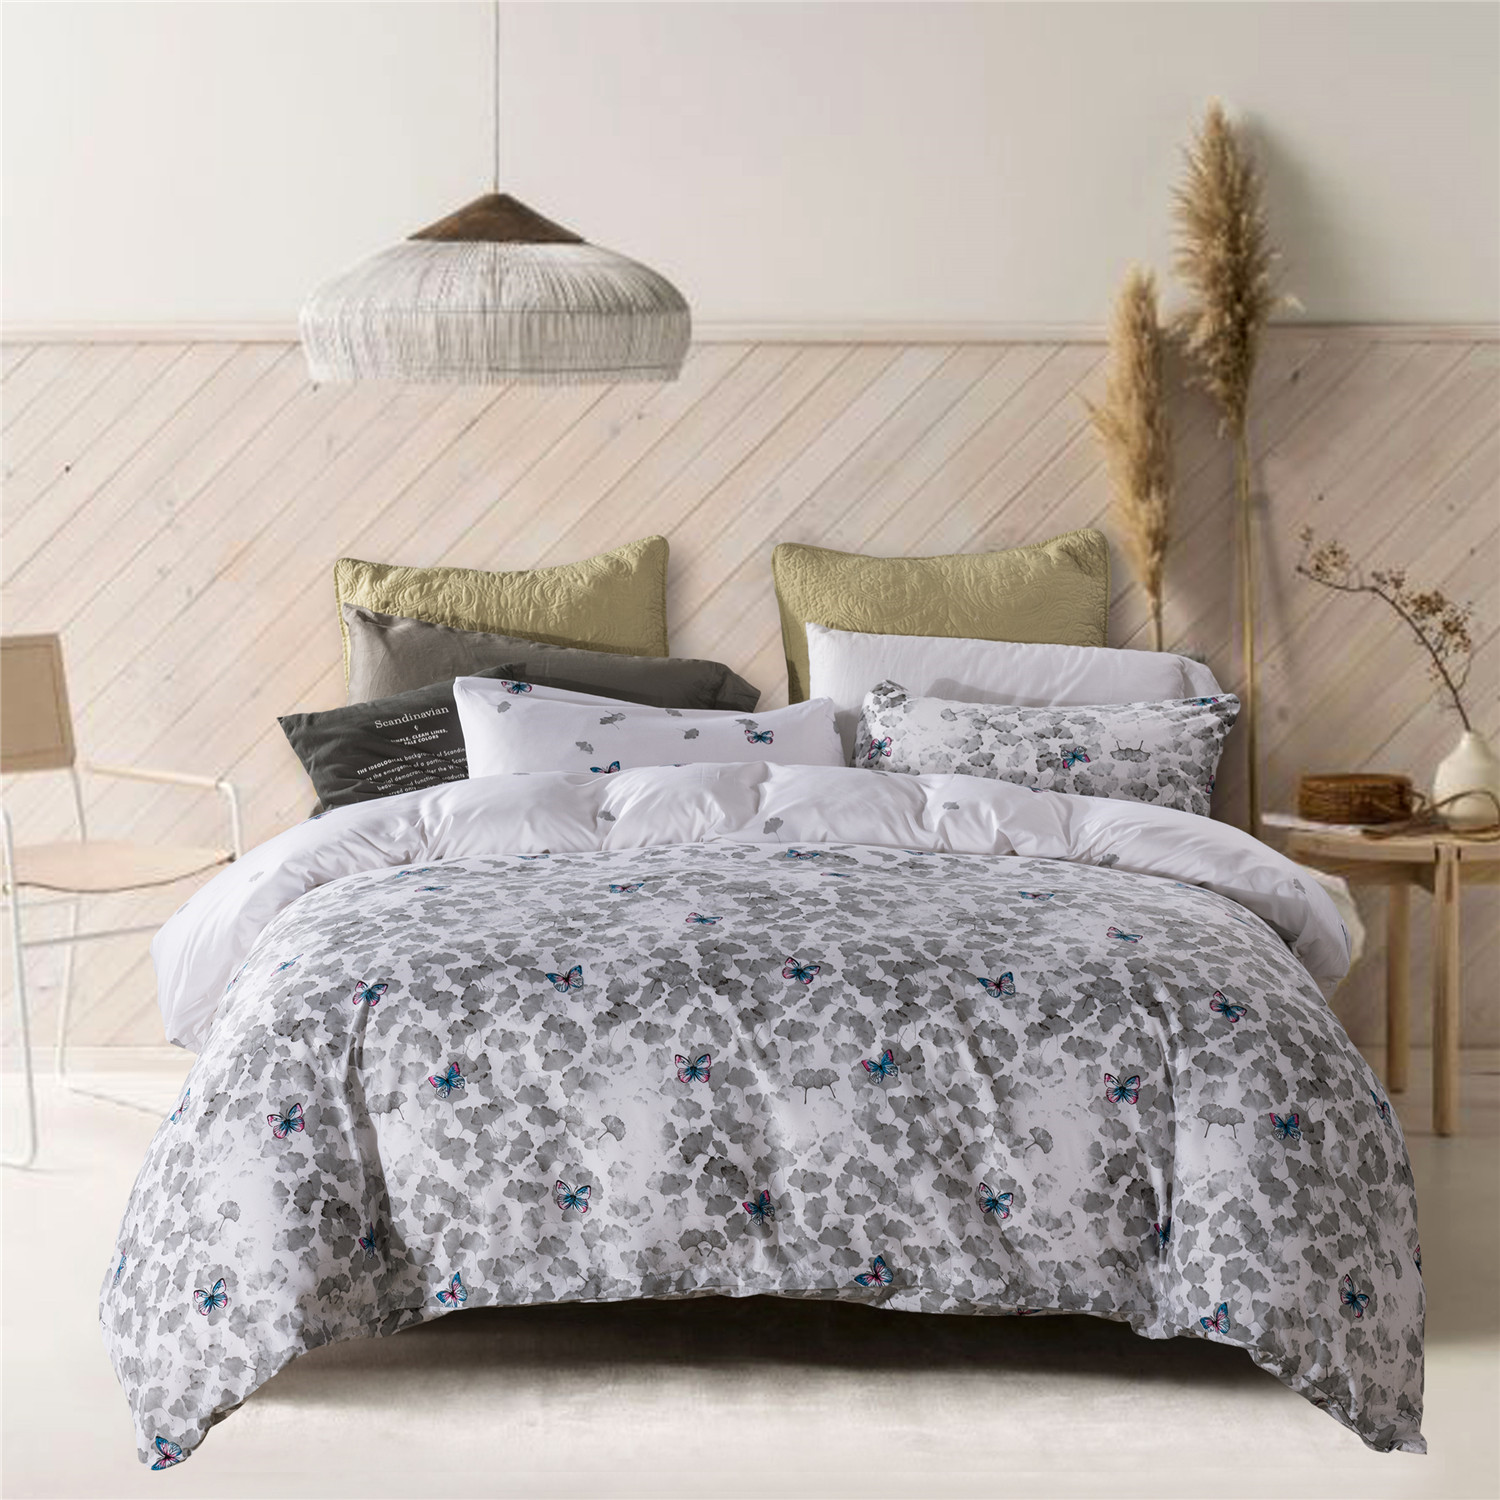 Floral Ink Wash Style Duvet Cover Set Microfiber Botanical Purple Butterflies And Gray Ginkgo Leaves Printed On White Walmart Canada